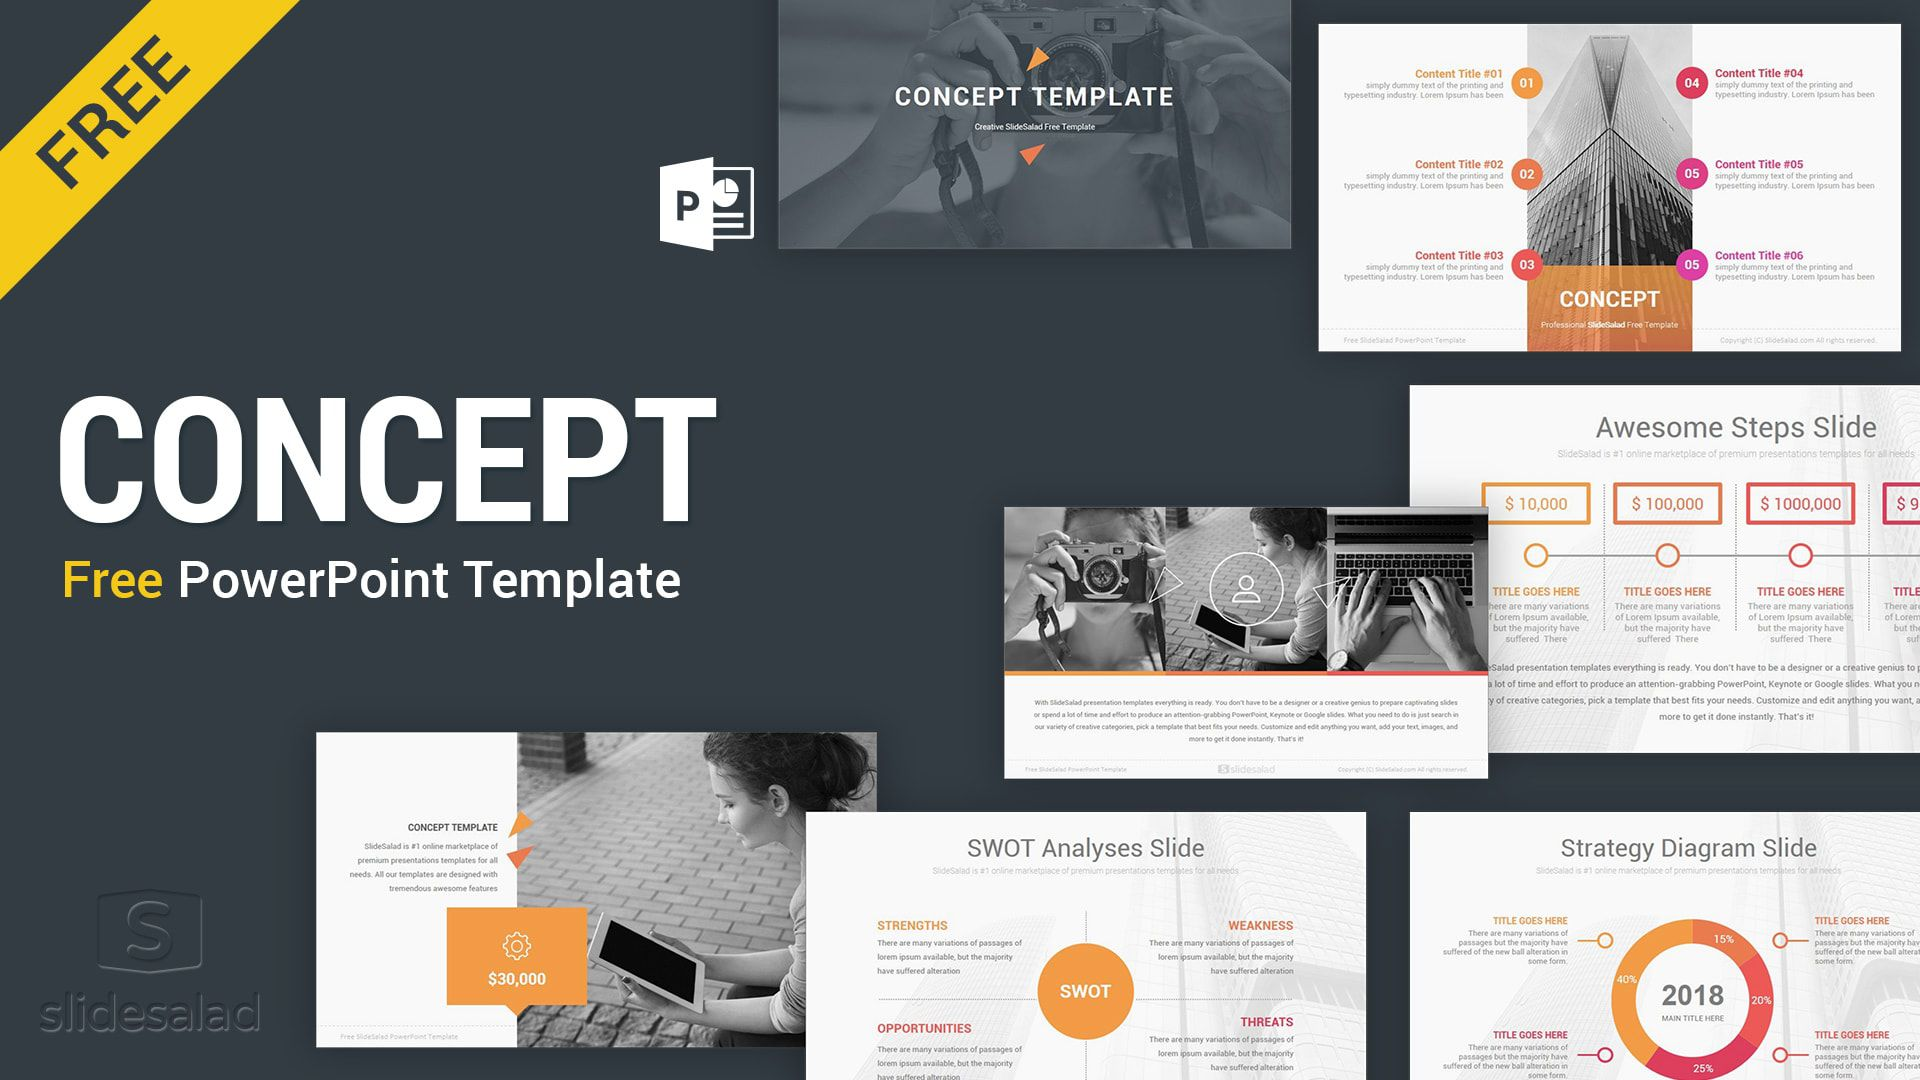 004 Simple Power Point Presentation Template Free Highest Clarity  Powerpoint Layout Download 2019 Modern BusinesFull